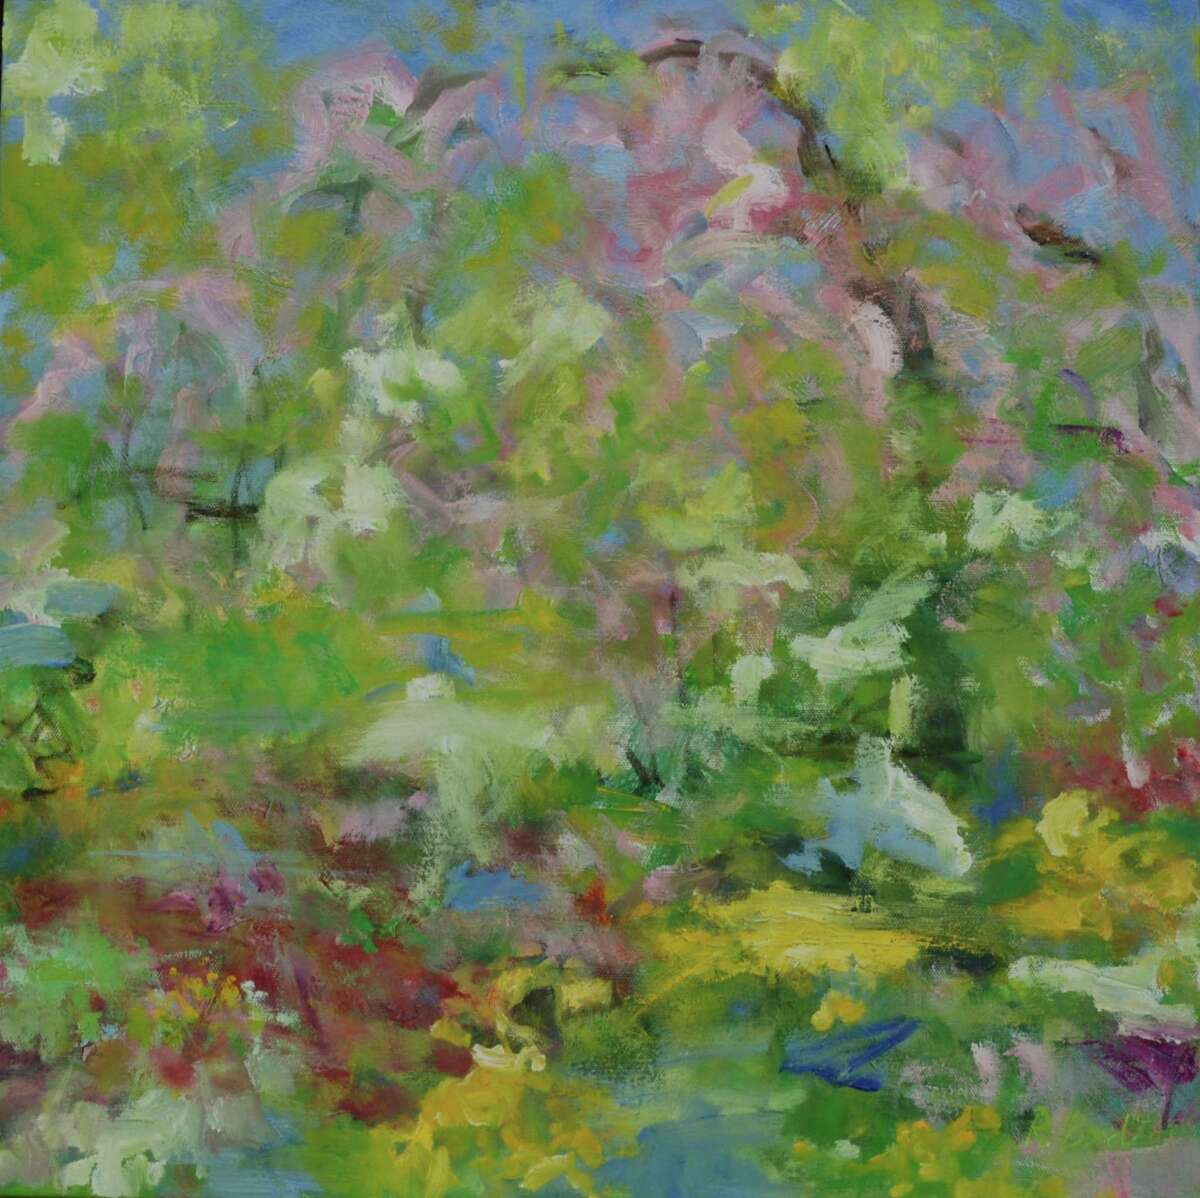 At Spectrum Art Gallery and Artisans Store's newest exhibit, Abstracting Nature, experience both impressionistic and abstract work in this seven-week show which kicks off Friday, May 14. Above, Cherry Blossoms in the Garden, oil on canvas, Rita Bond.